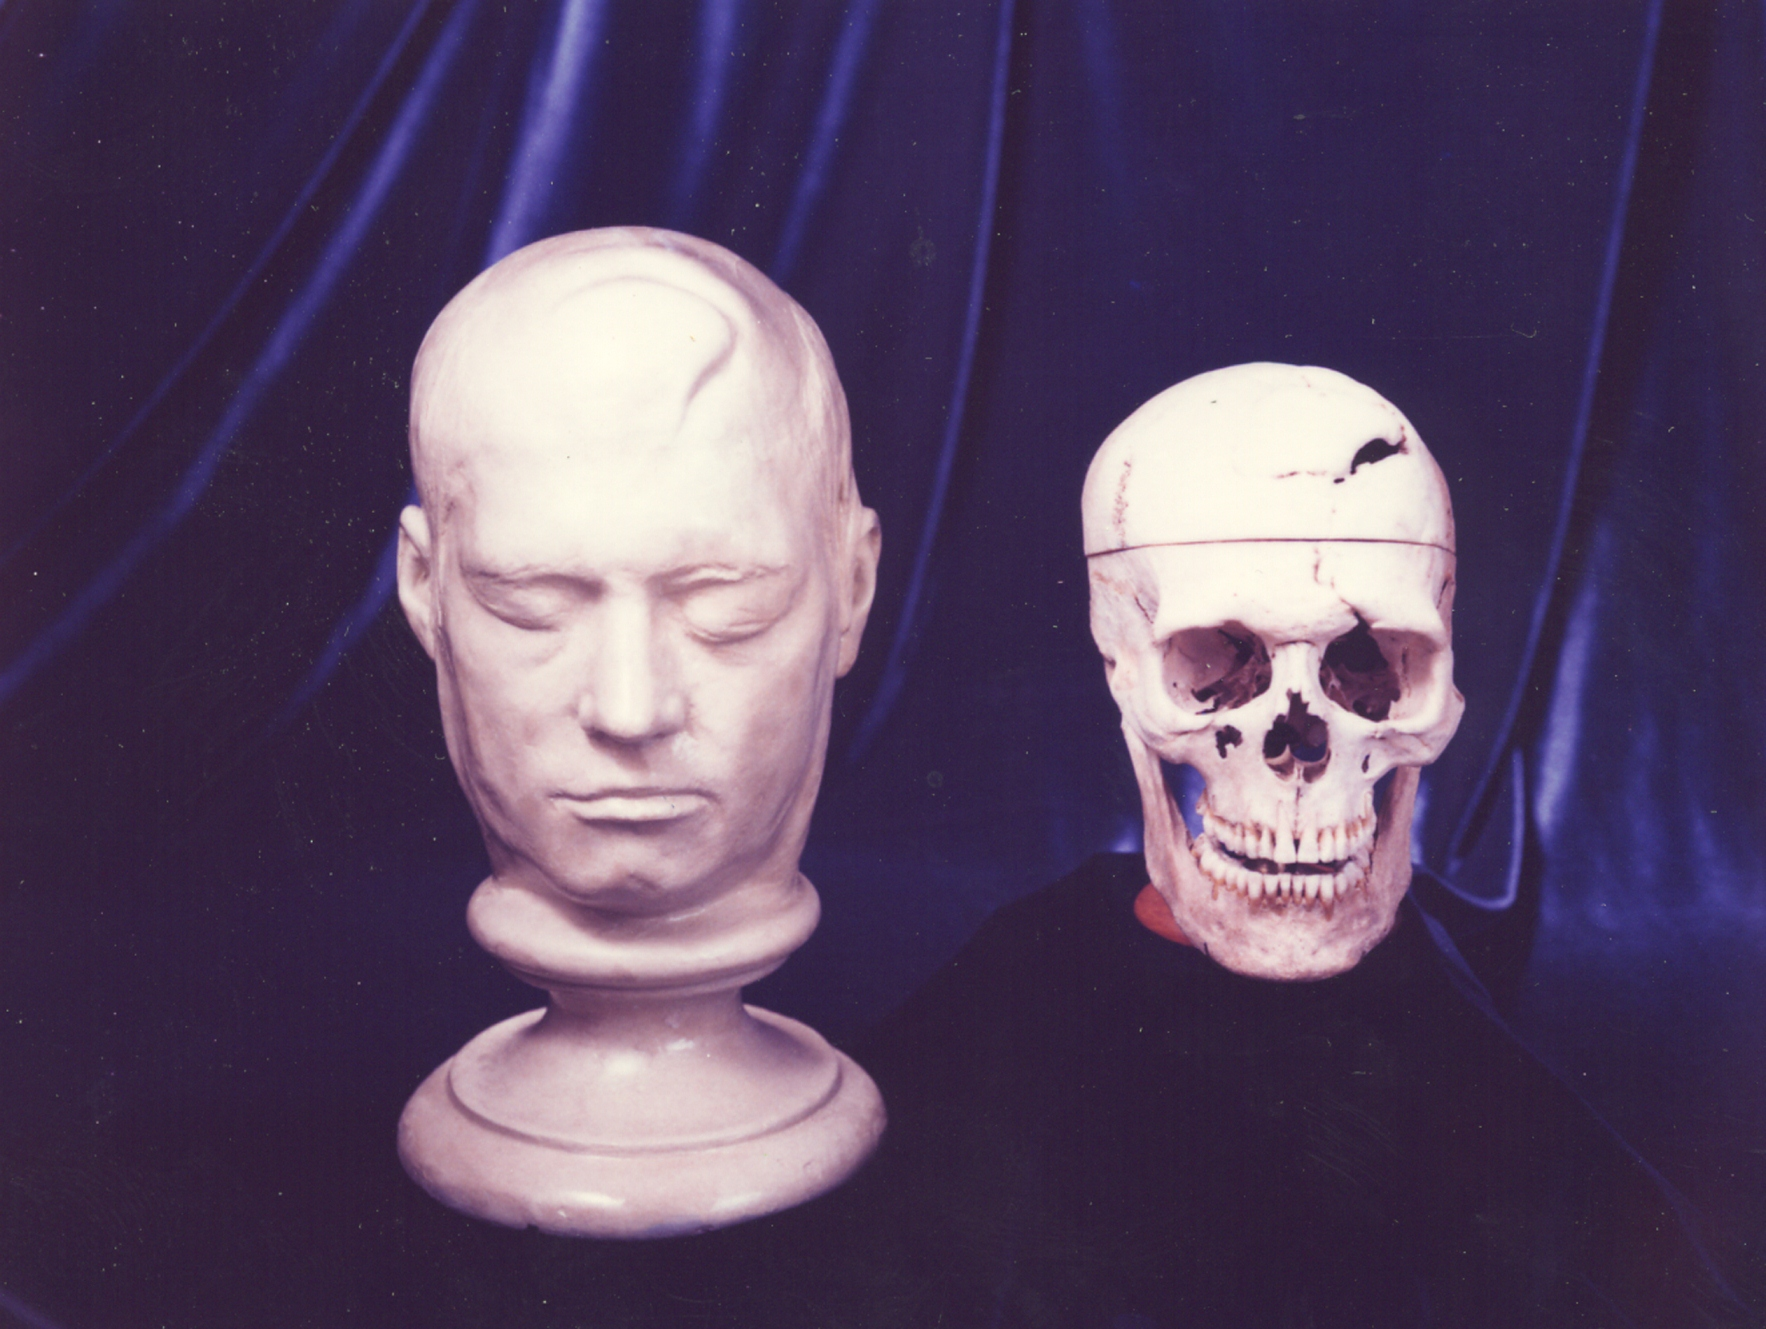 Skull and life mask of Phineas Gage, Warren Anatomical Museum, Francis A. Countway Library of Medicine, WAM 00949 & 00950